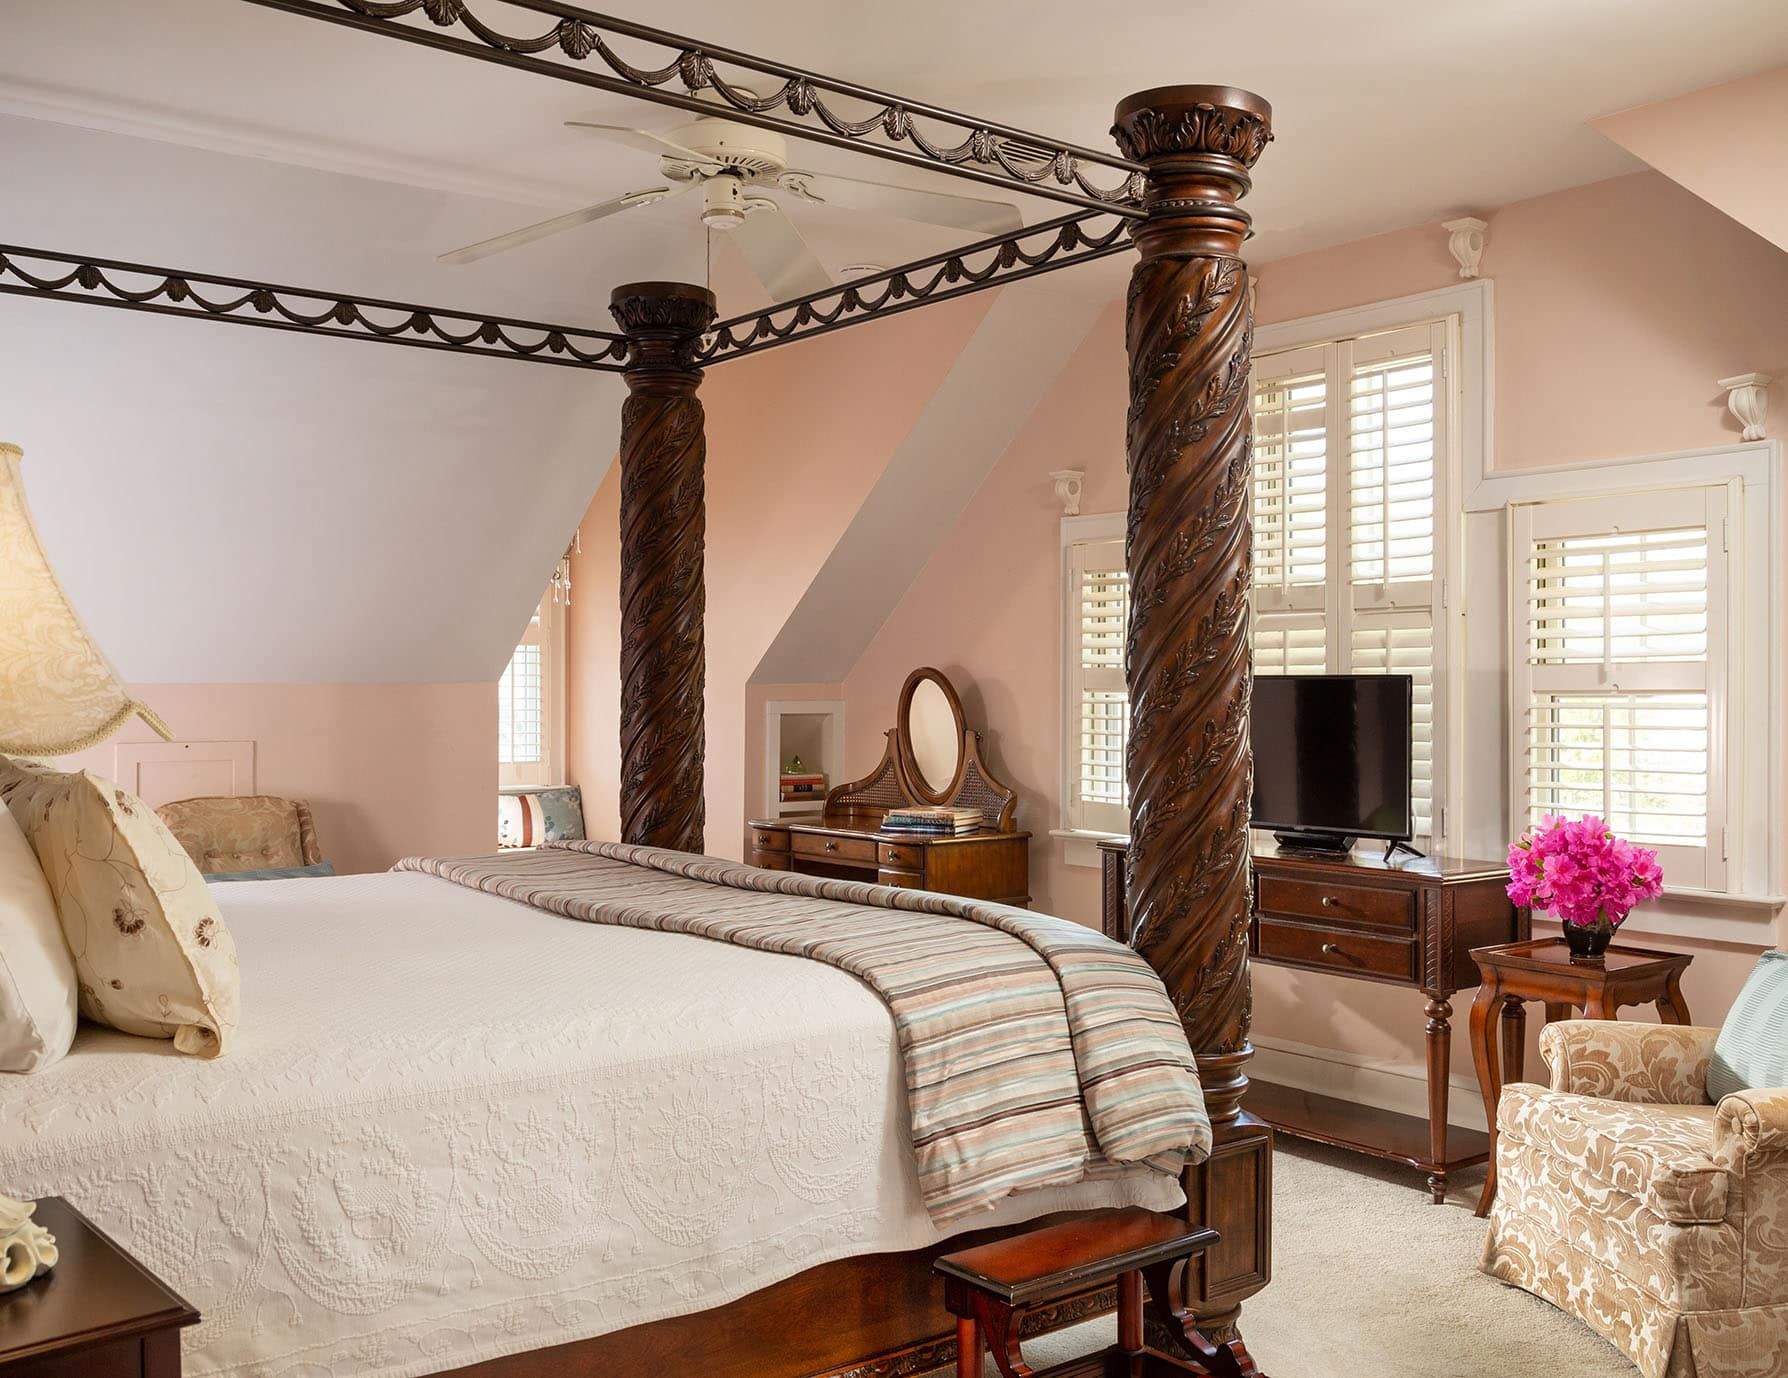 Roanoke Island Accommodations Offer a King Four Poster Bed